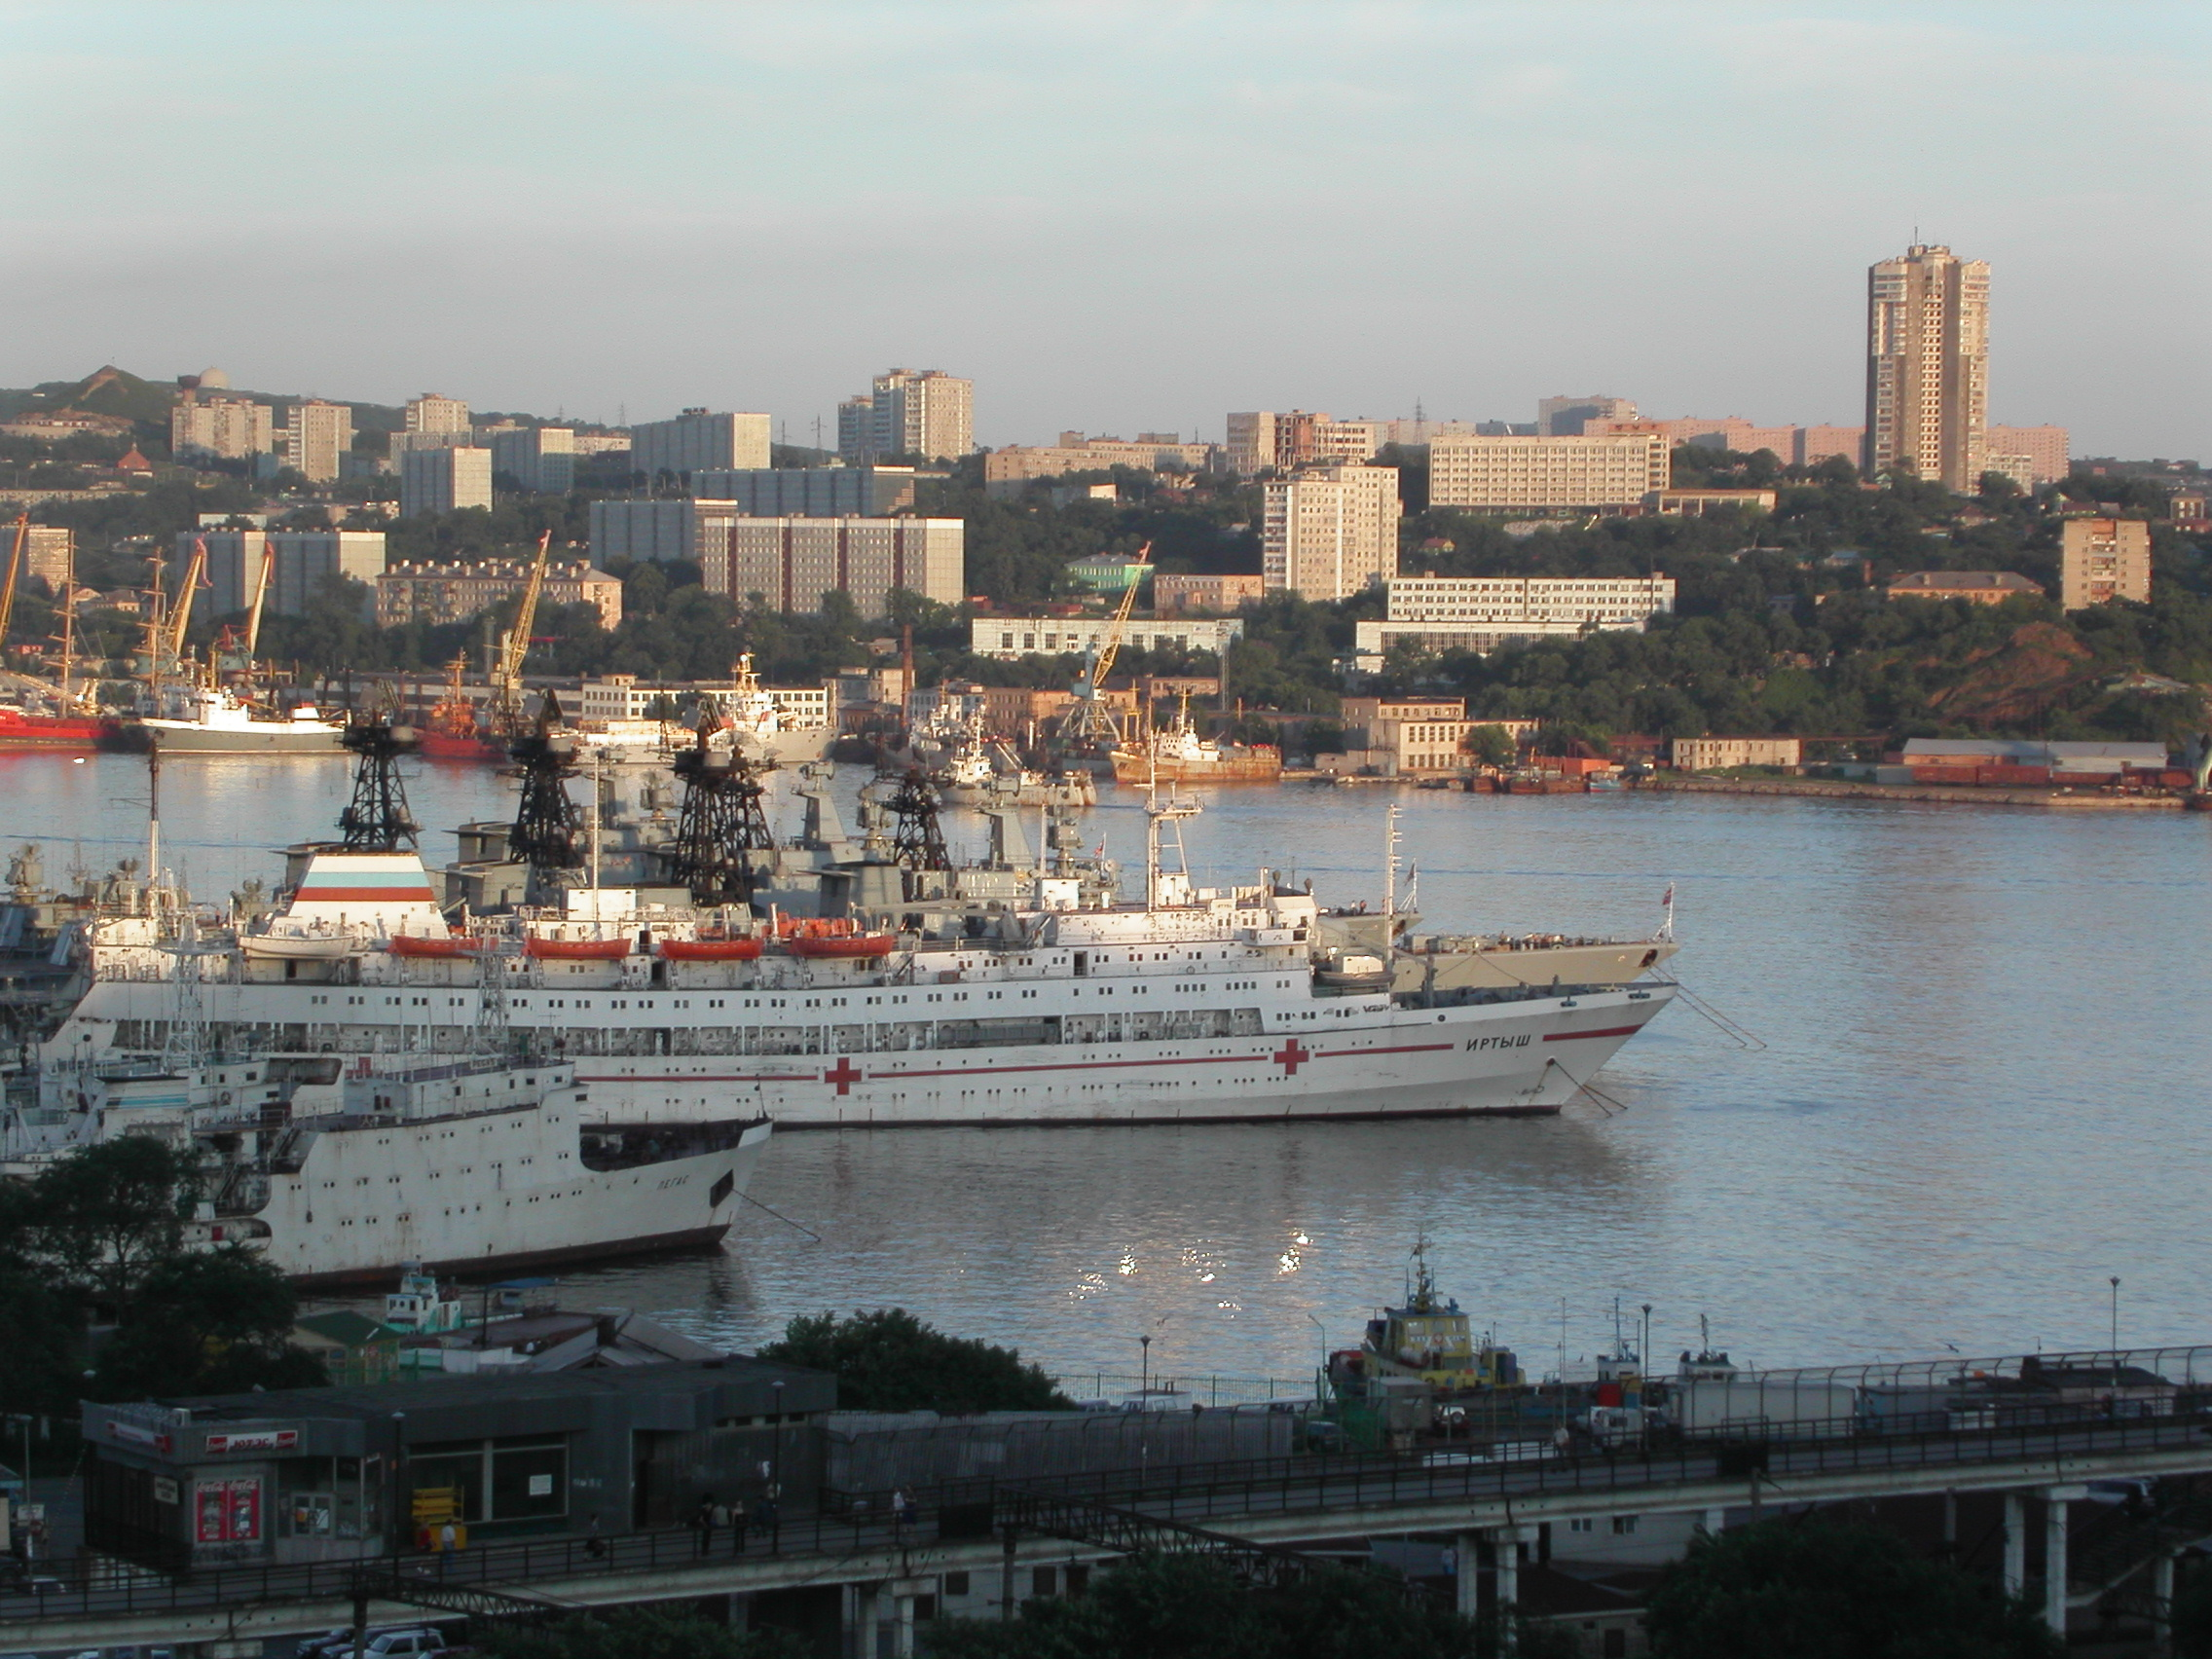 Vladivostok is one of the many